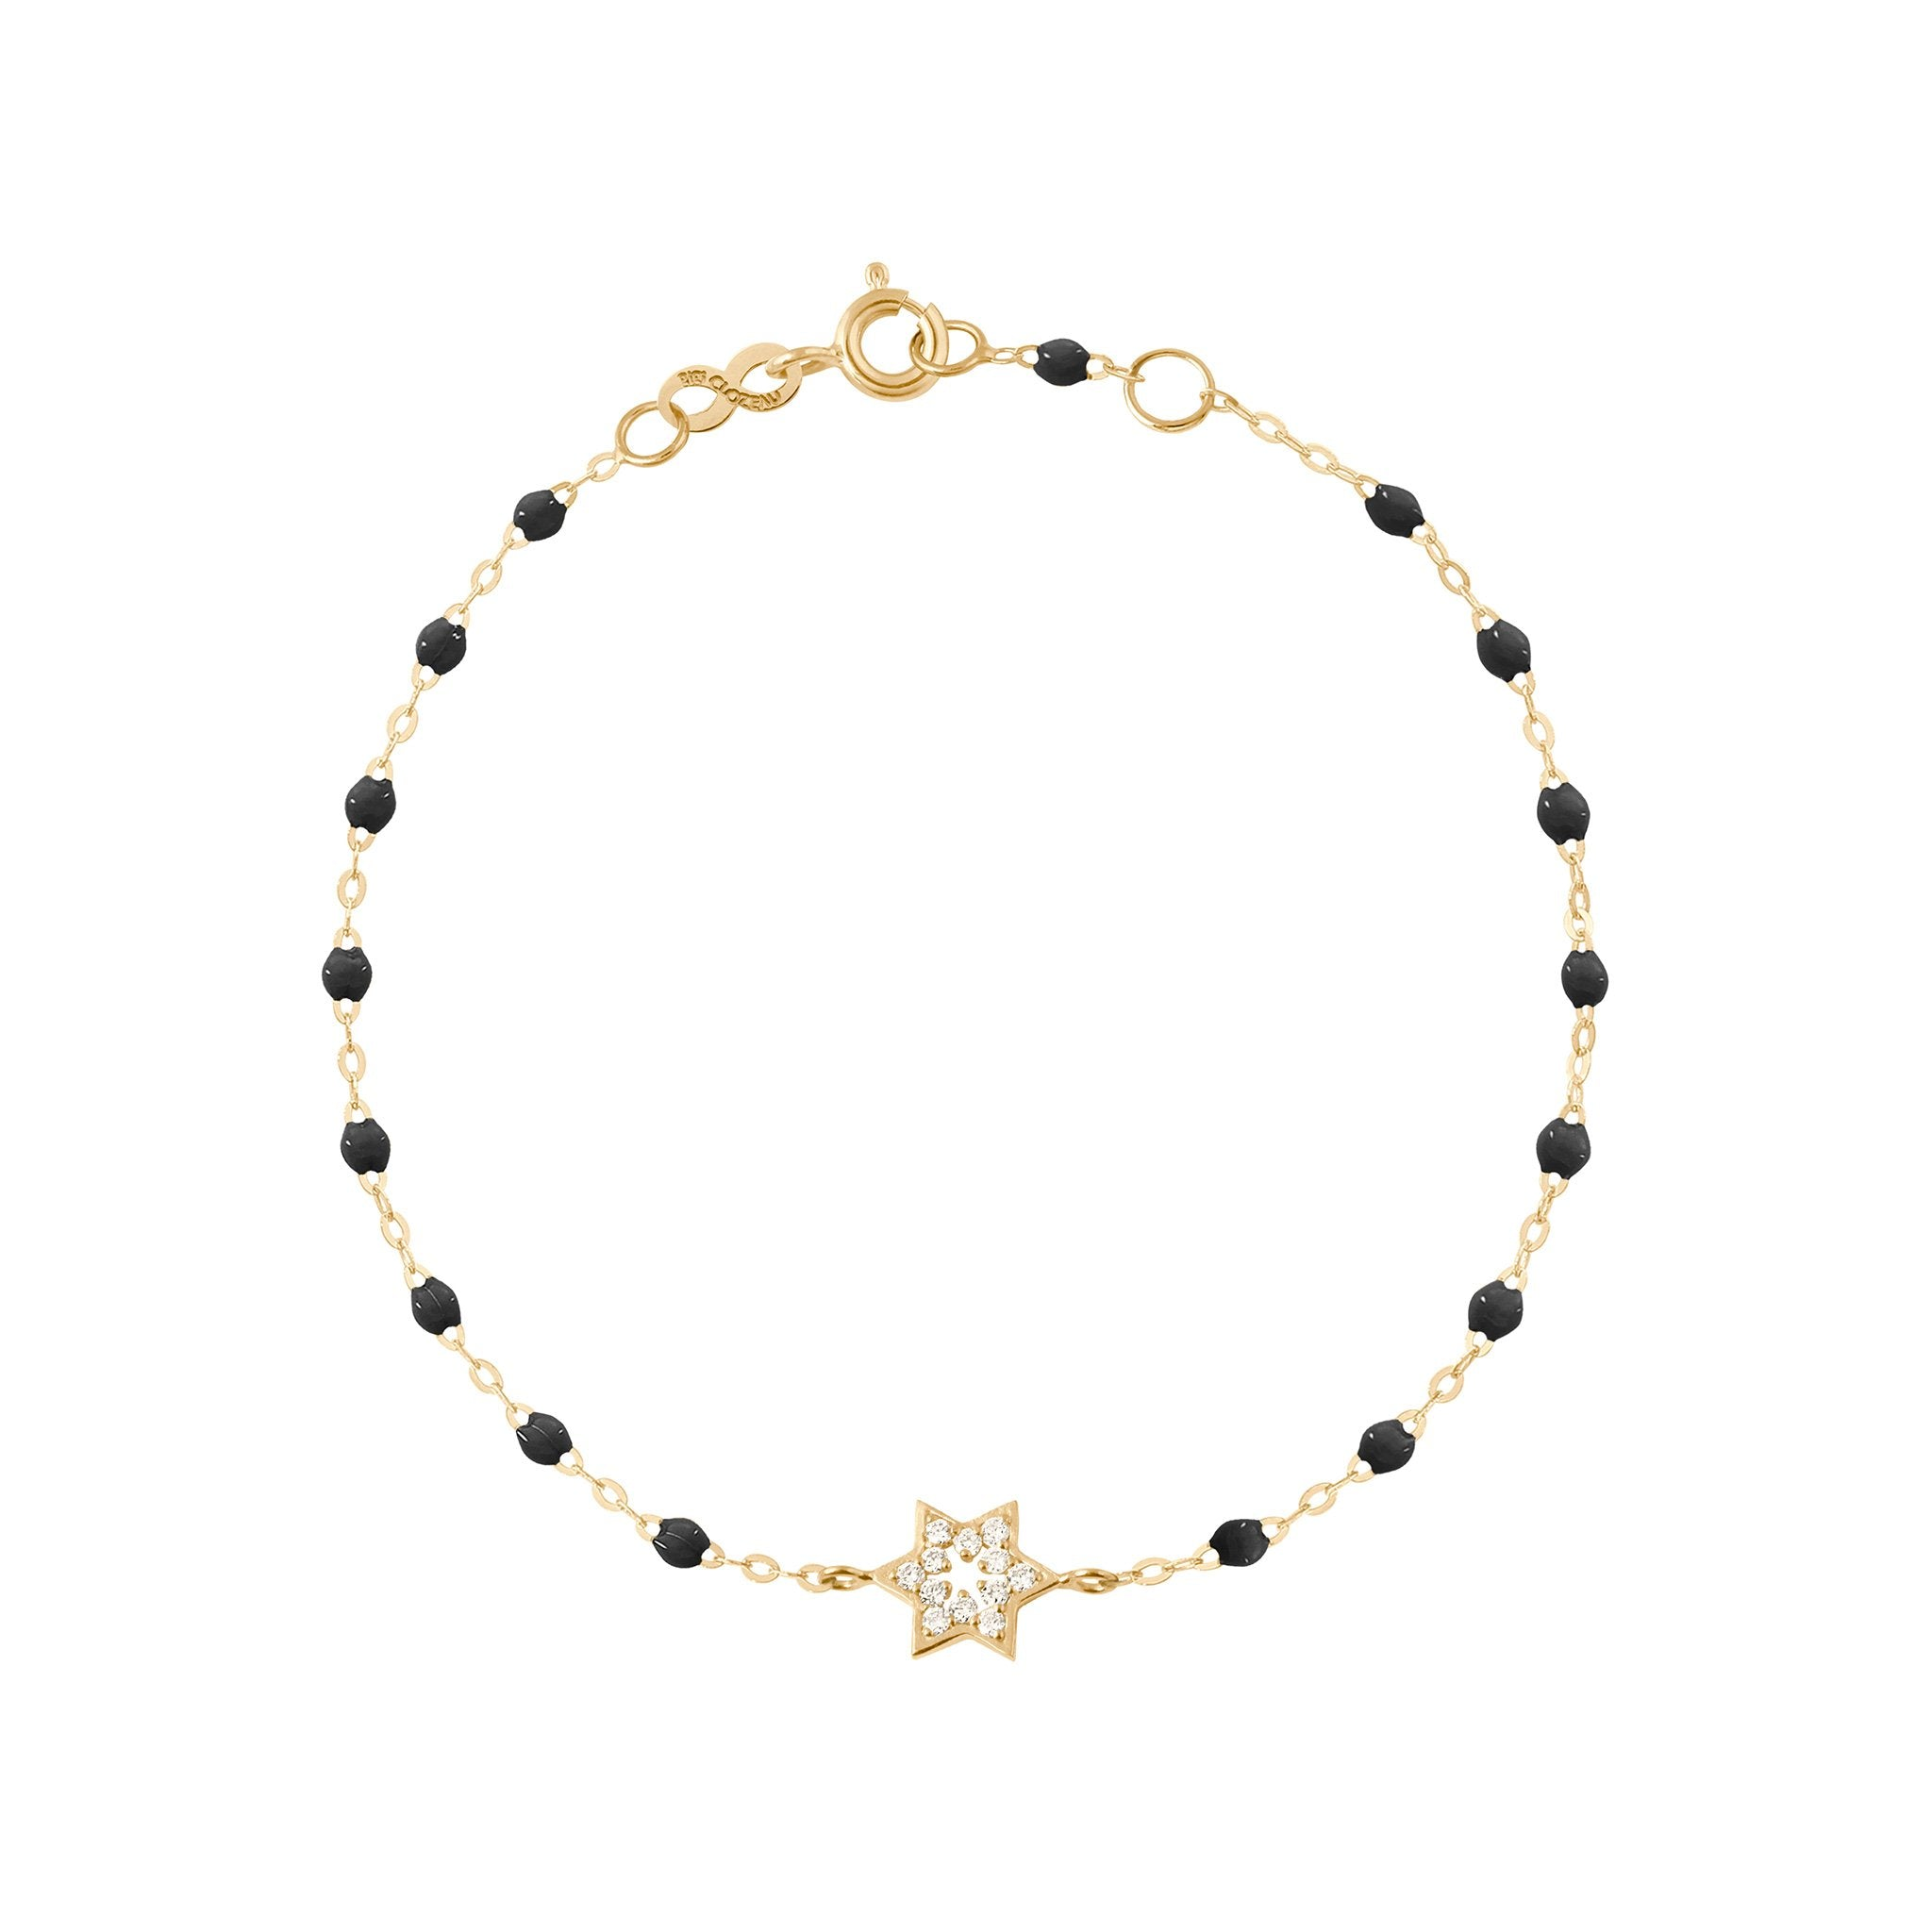 Gigi Clozeau - Star of David Classic Gigi Black diamonds bracelet, Yellow Gold, 6.7